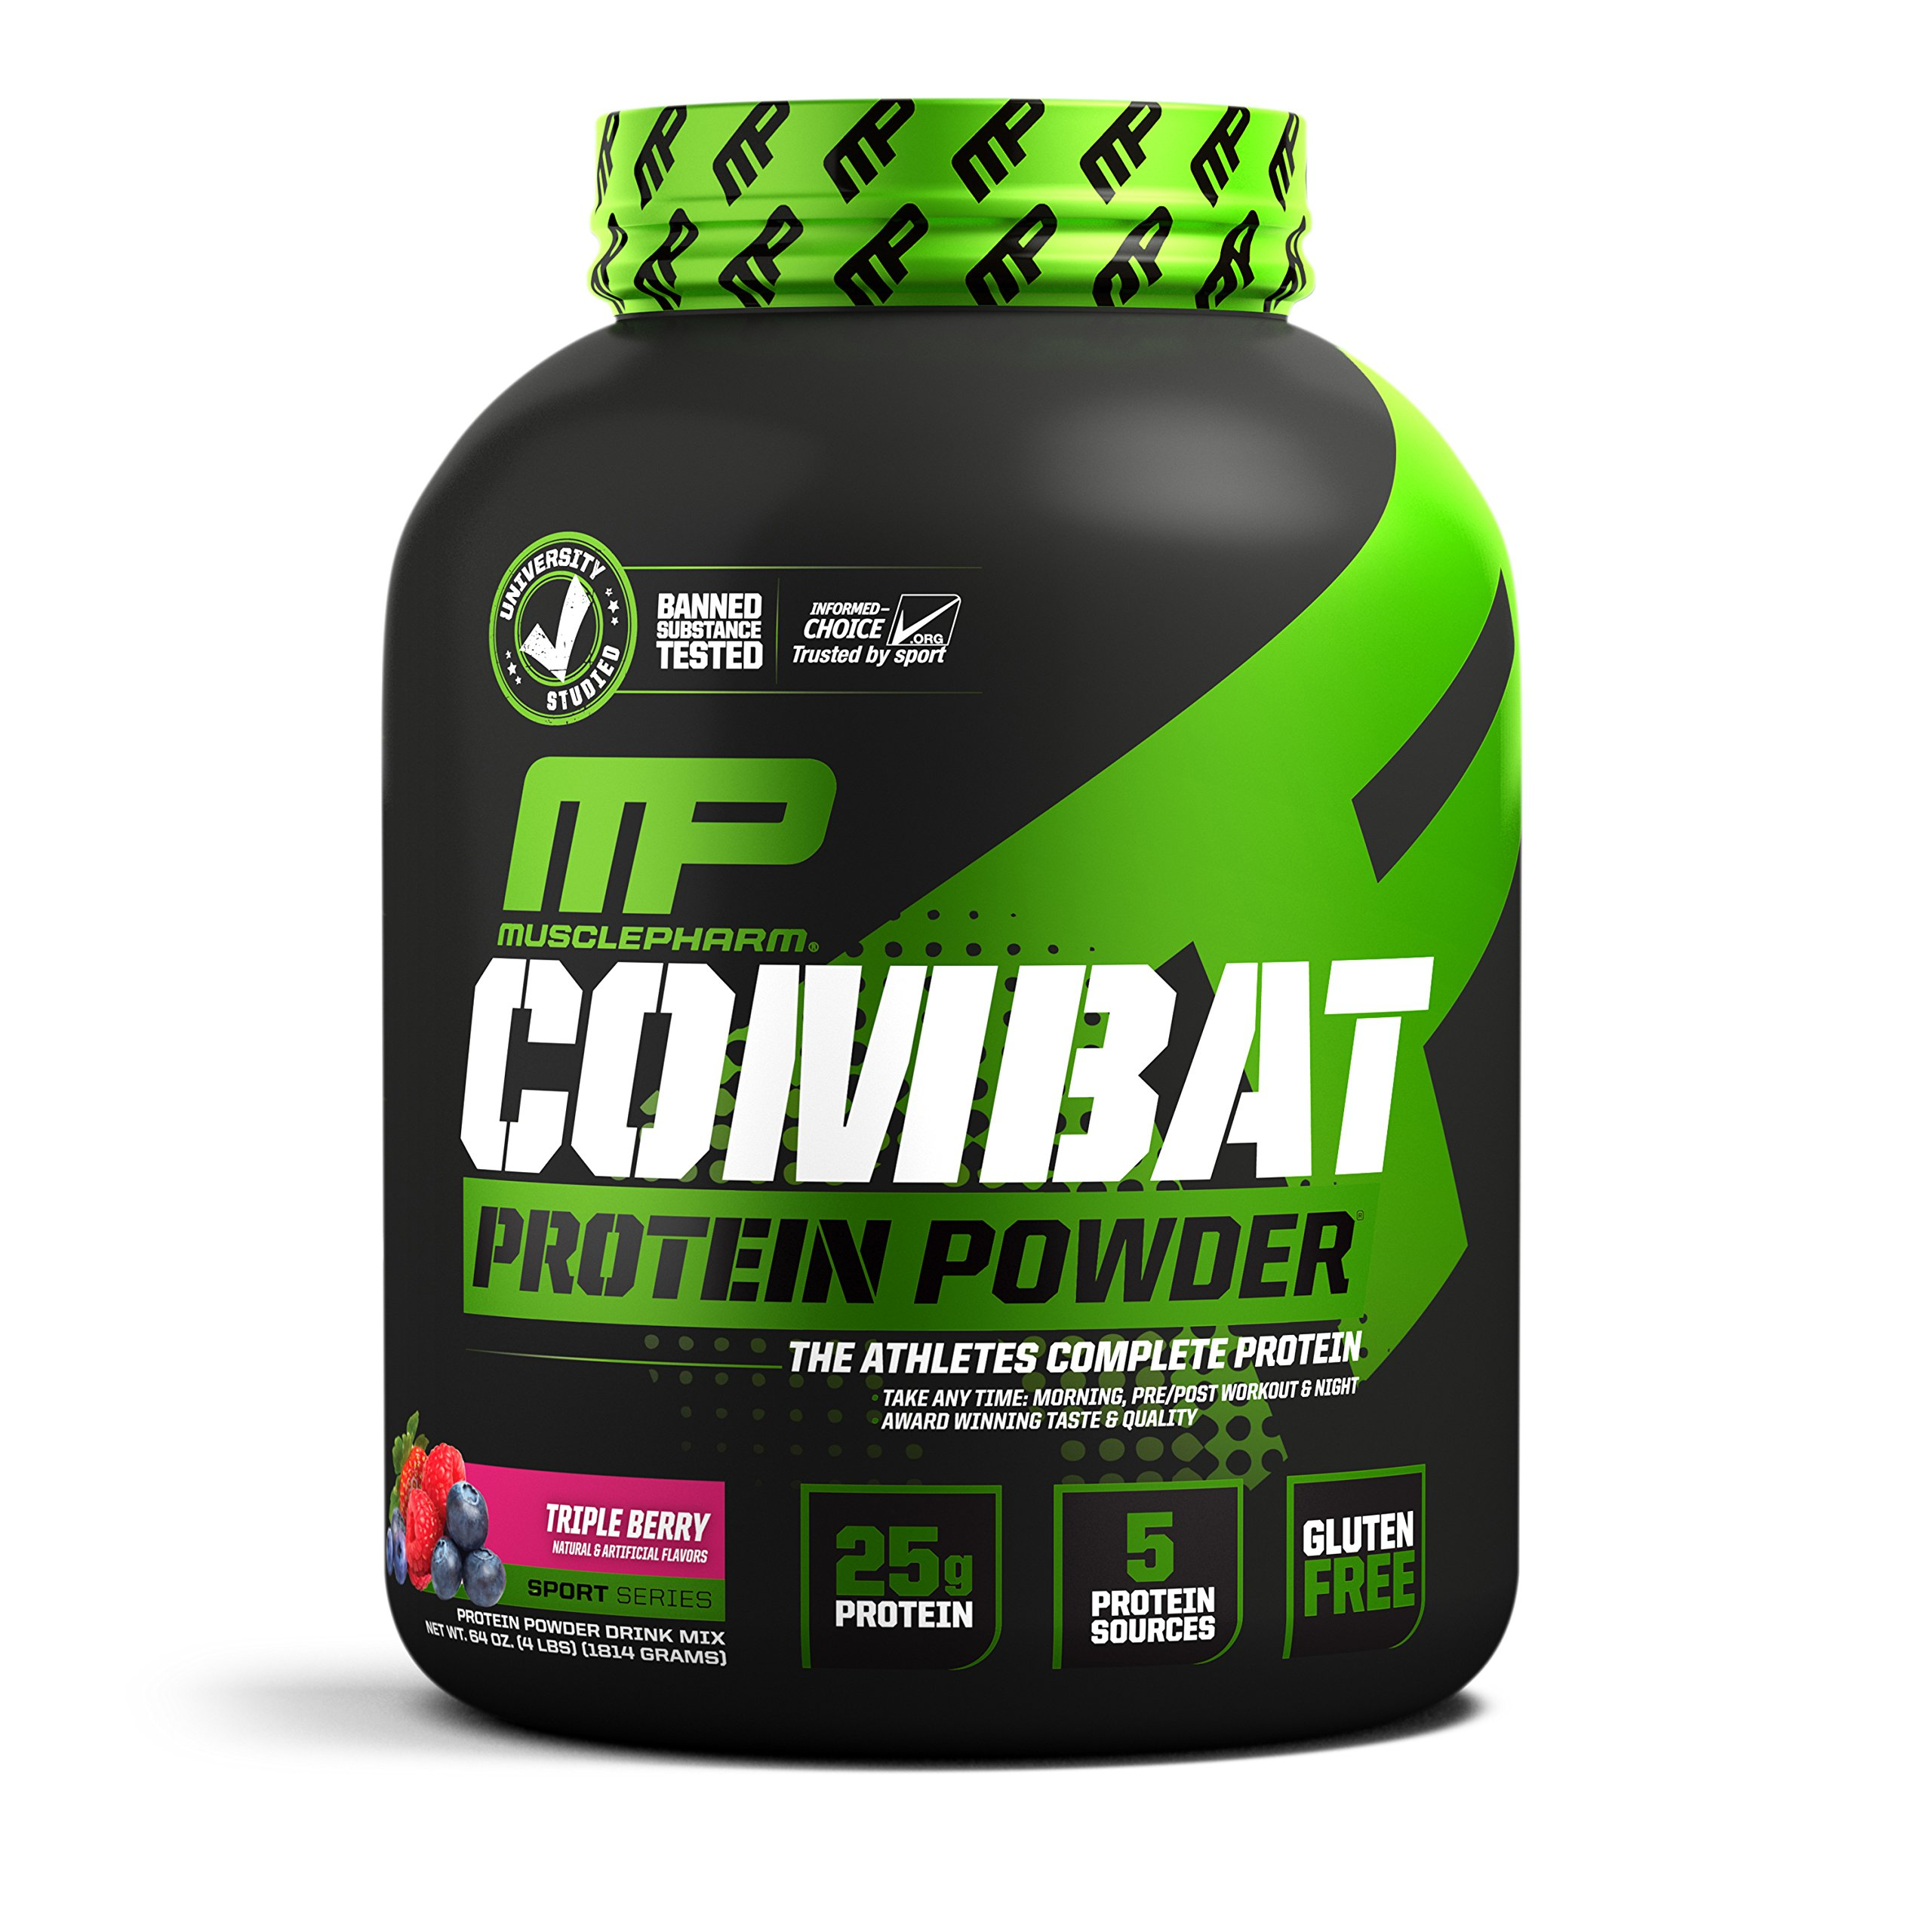 MusclePharm Combat Protein Powder, Essential Whey Protein Powder, Isolate Whey Protein, Casein and Egg Protein with BCAAs and Glutamine for Recovery, Triple Berry, 4-Pound, 54 Servings by Muscle Pharm